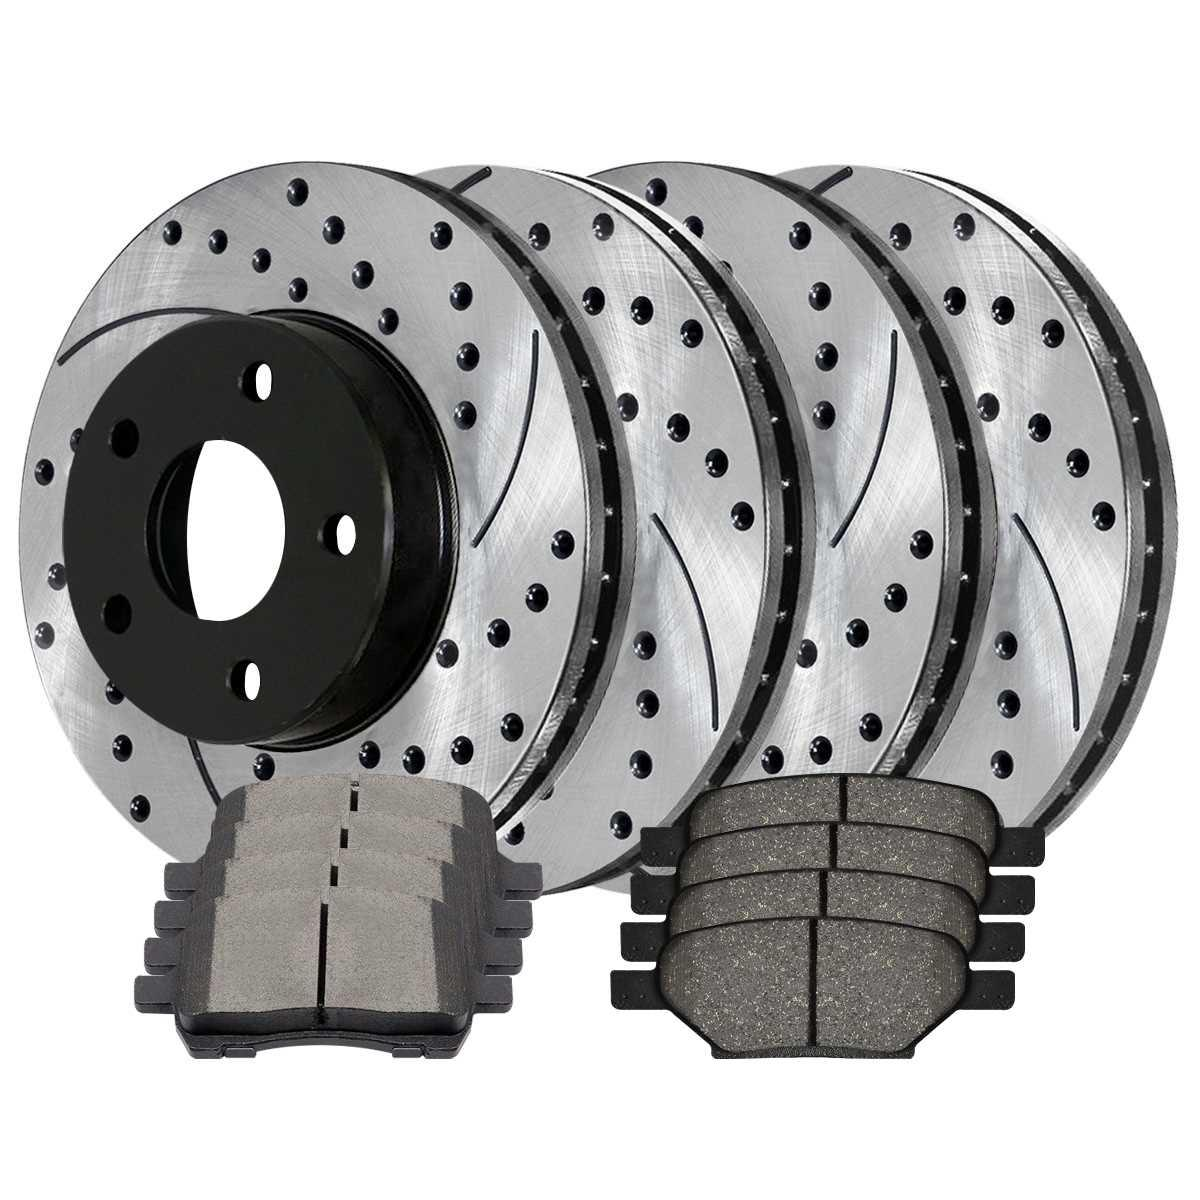 Prime Choice Auto Parts SCD1012PR64111 Set of 4 Drilled Slotted Rotors and 8 Ceramic Brake Pads